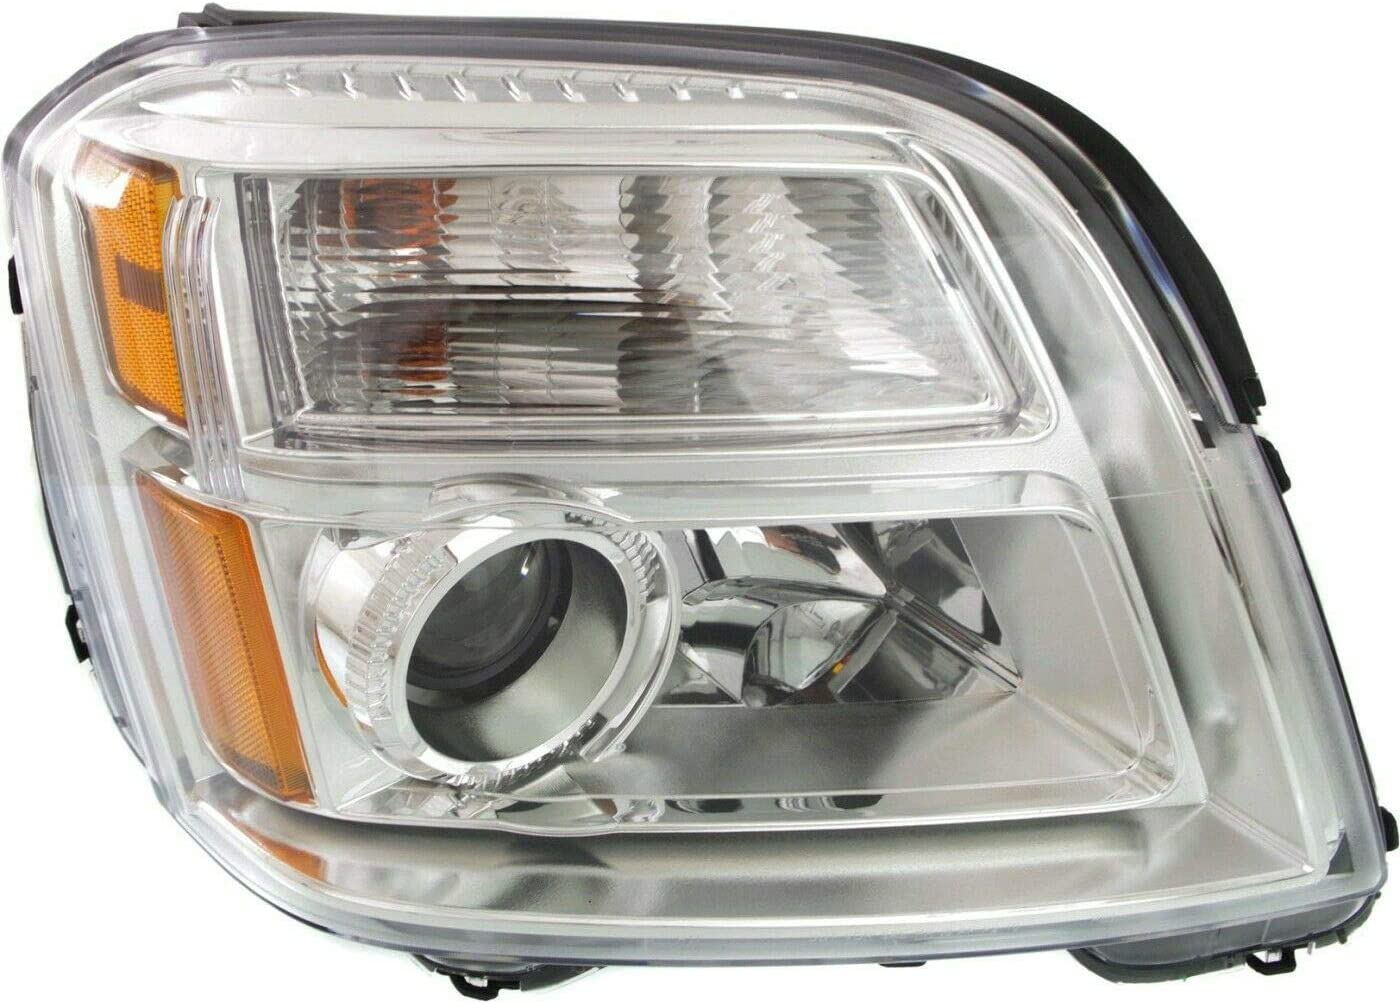 BreaAP Headlight Compatible with outlet 2010-15 P Terrain Utility Sport Max 78% OFF